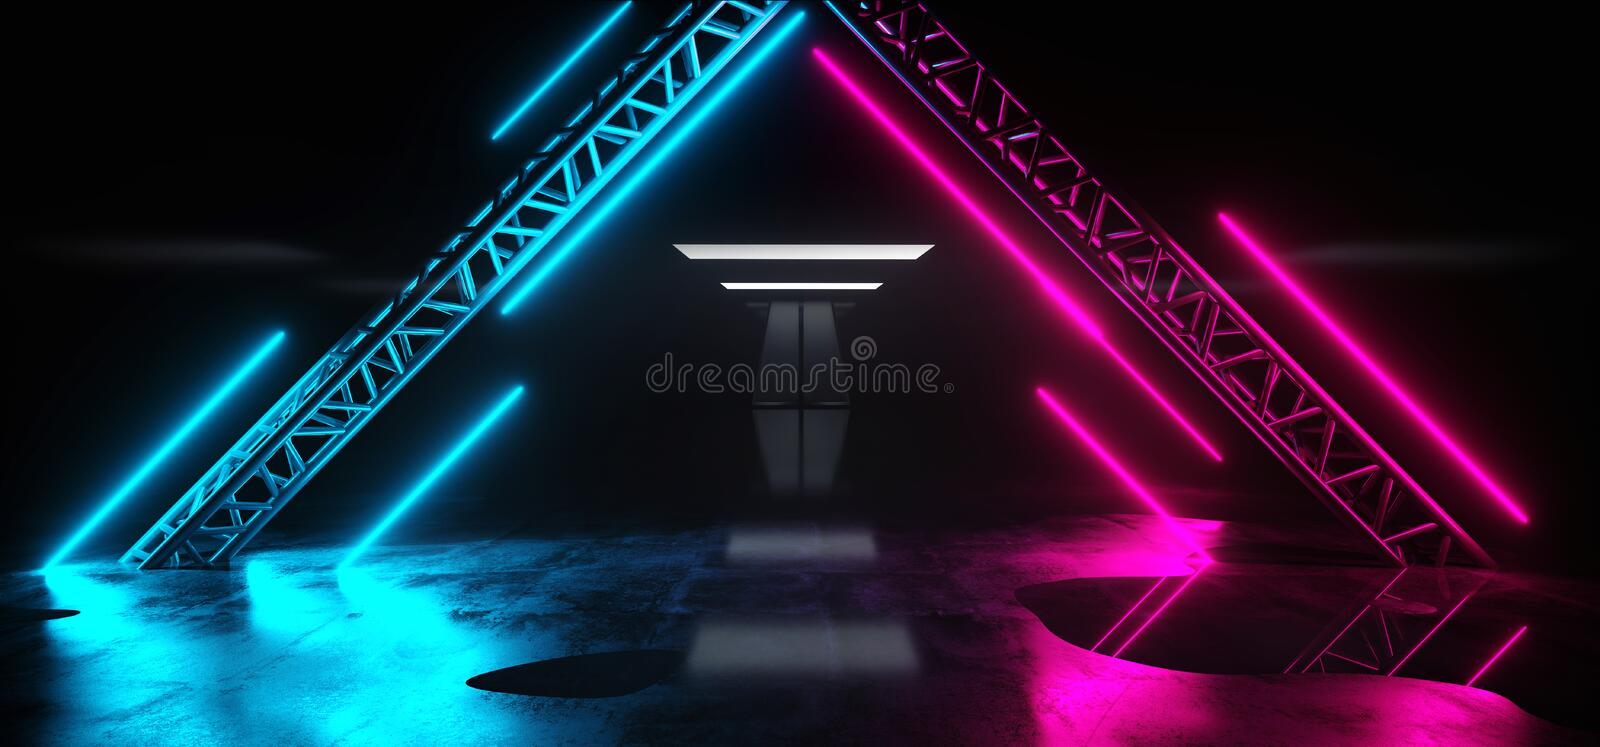 Empty Neon Studio Construction Triangle Vibrant Sci Fi Wet Stage Dance Lights Glowing Purple Blue Pink Reflecting On Grunge. Concrete Big White Glowing Lights stock illustration